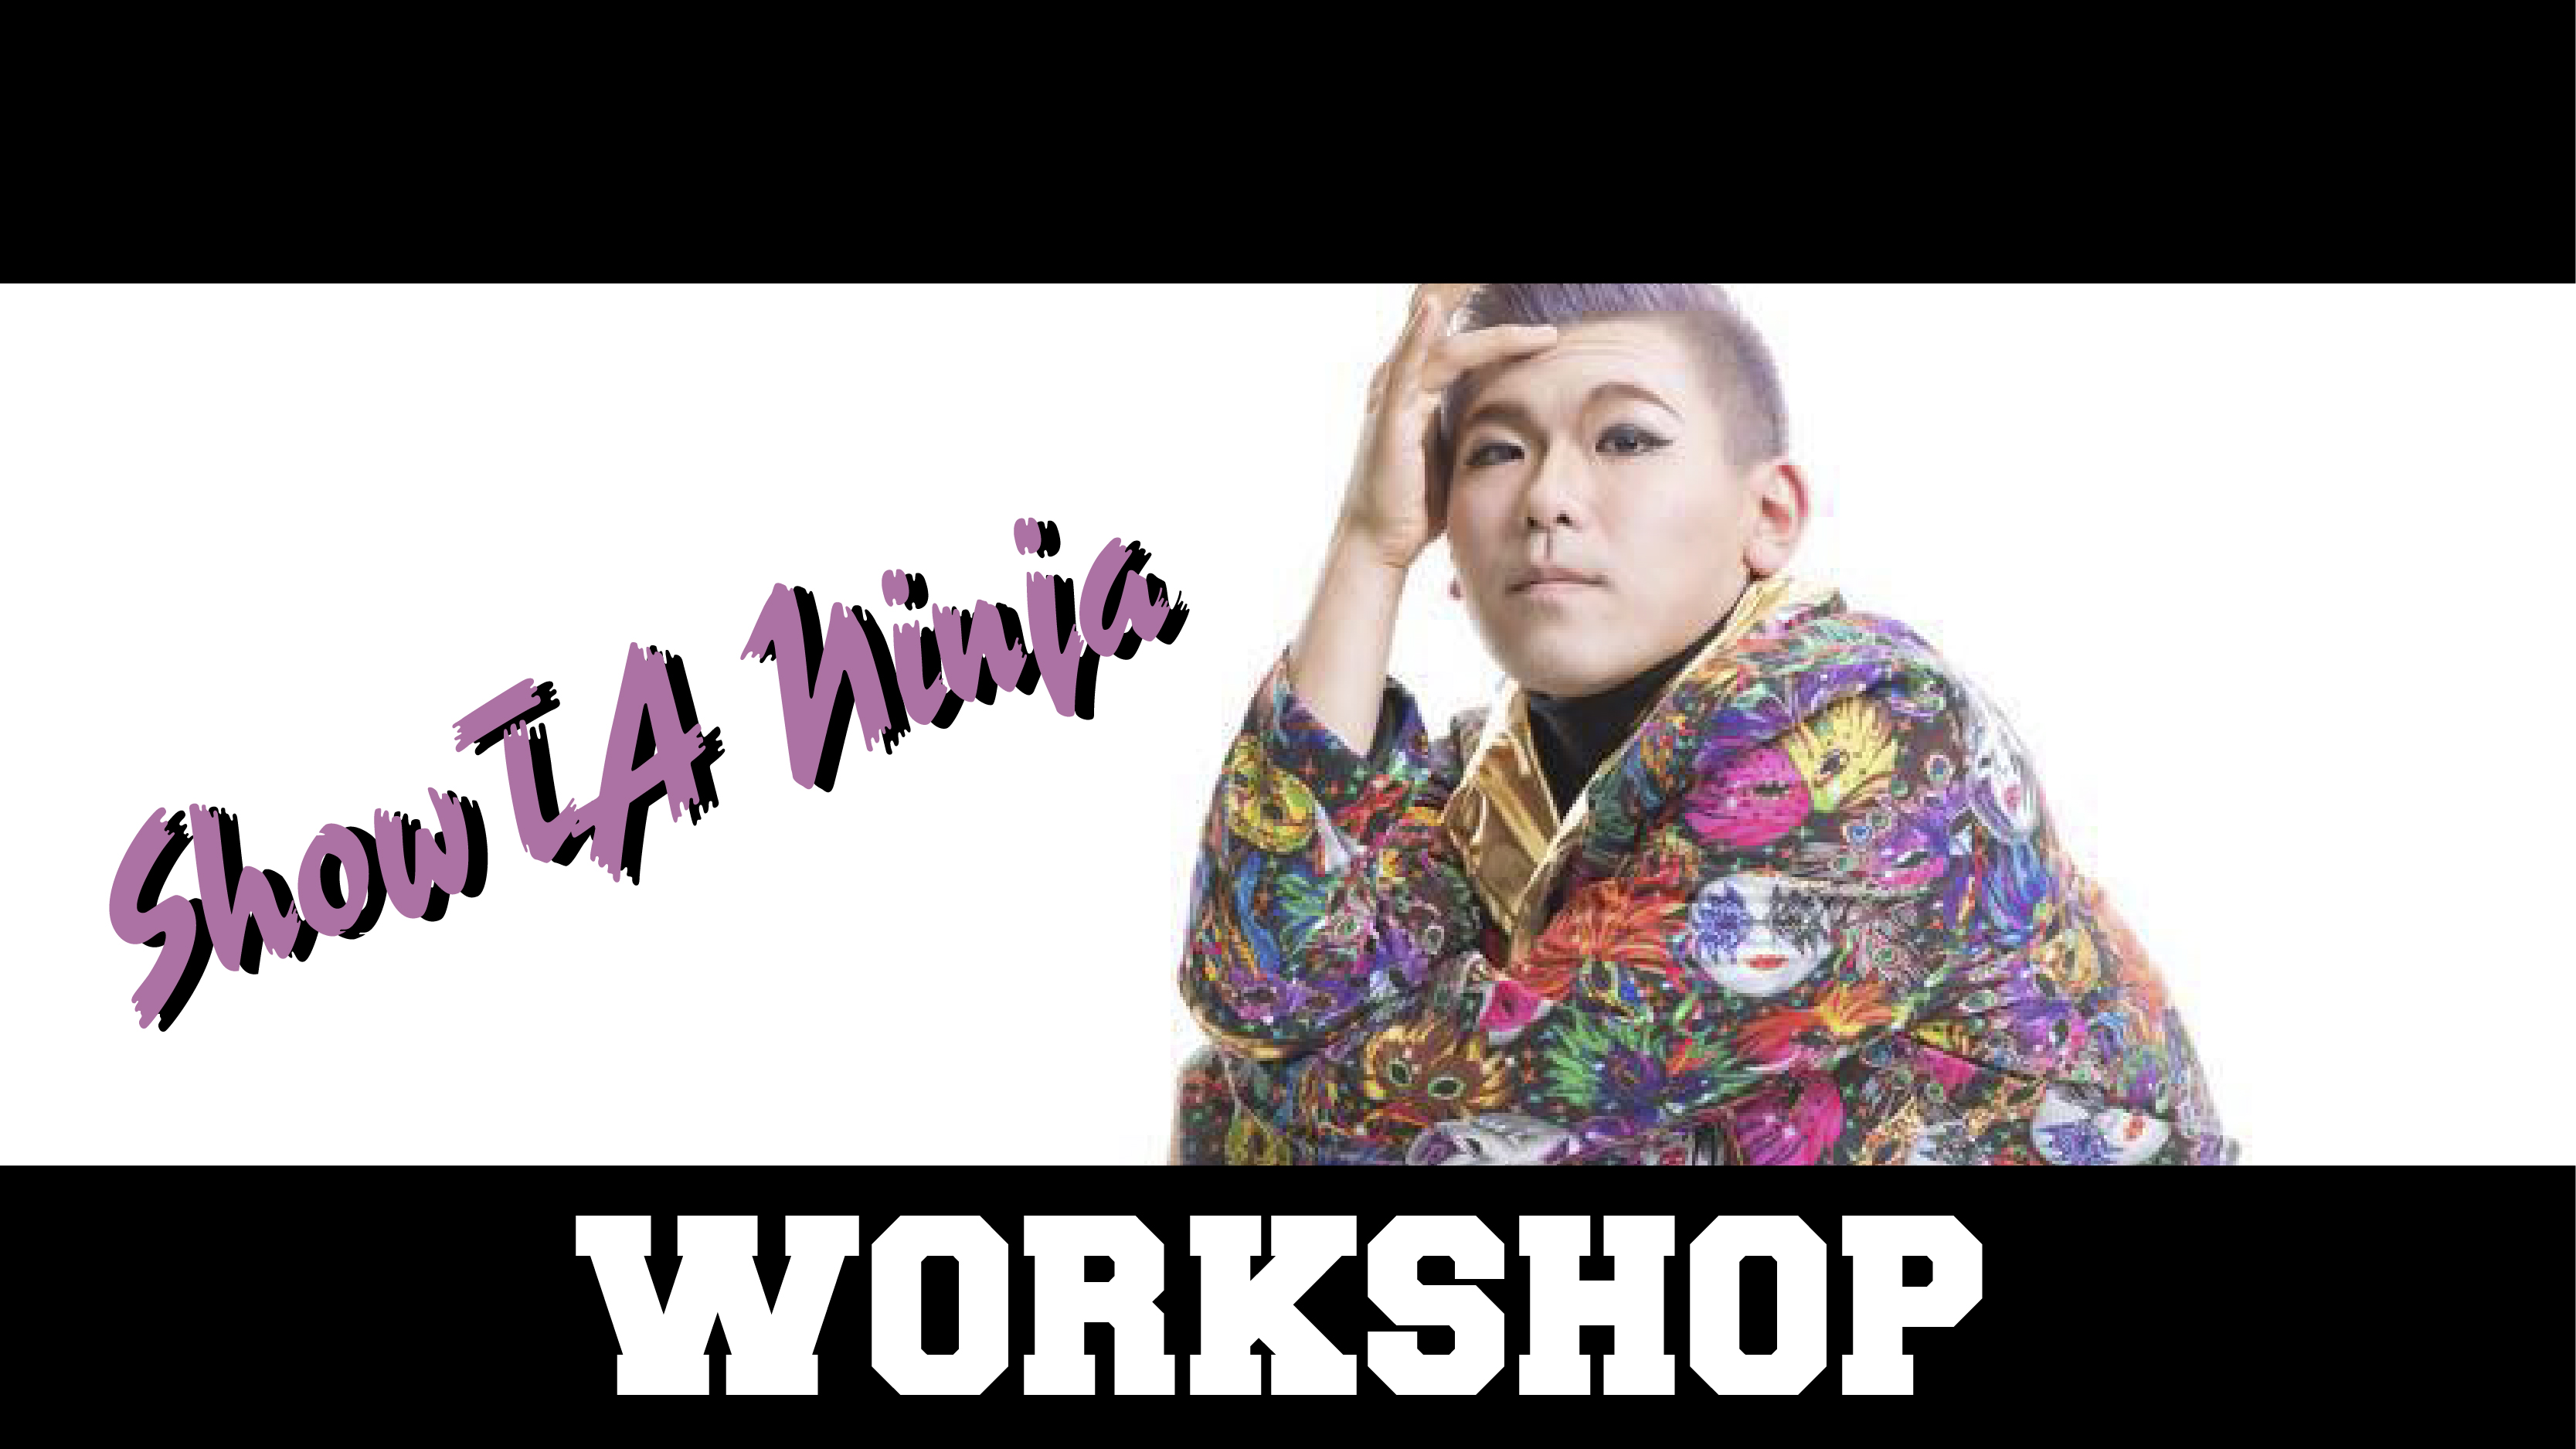 ShowTA Ninja WORKSHOP